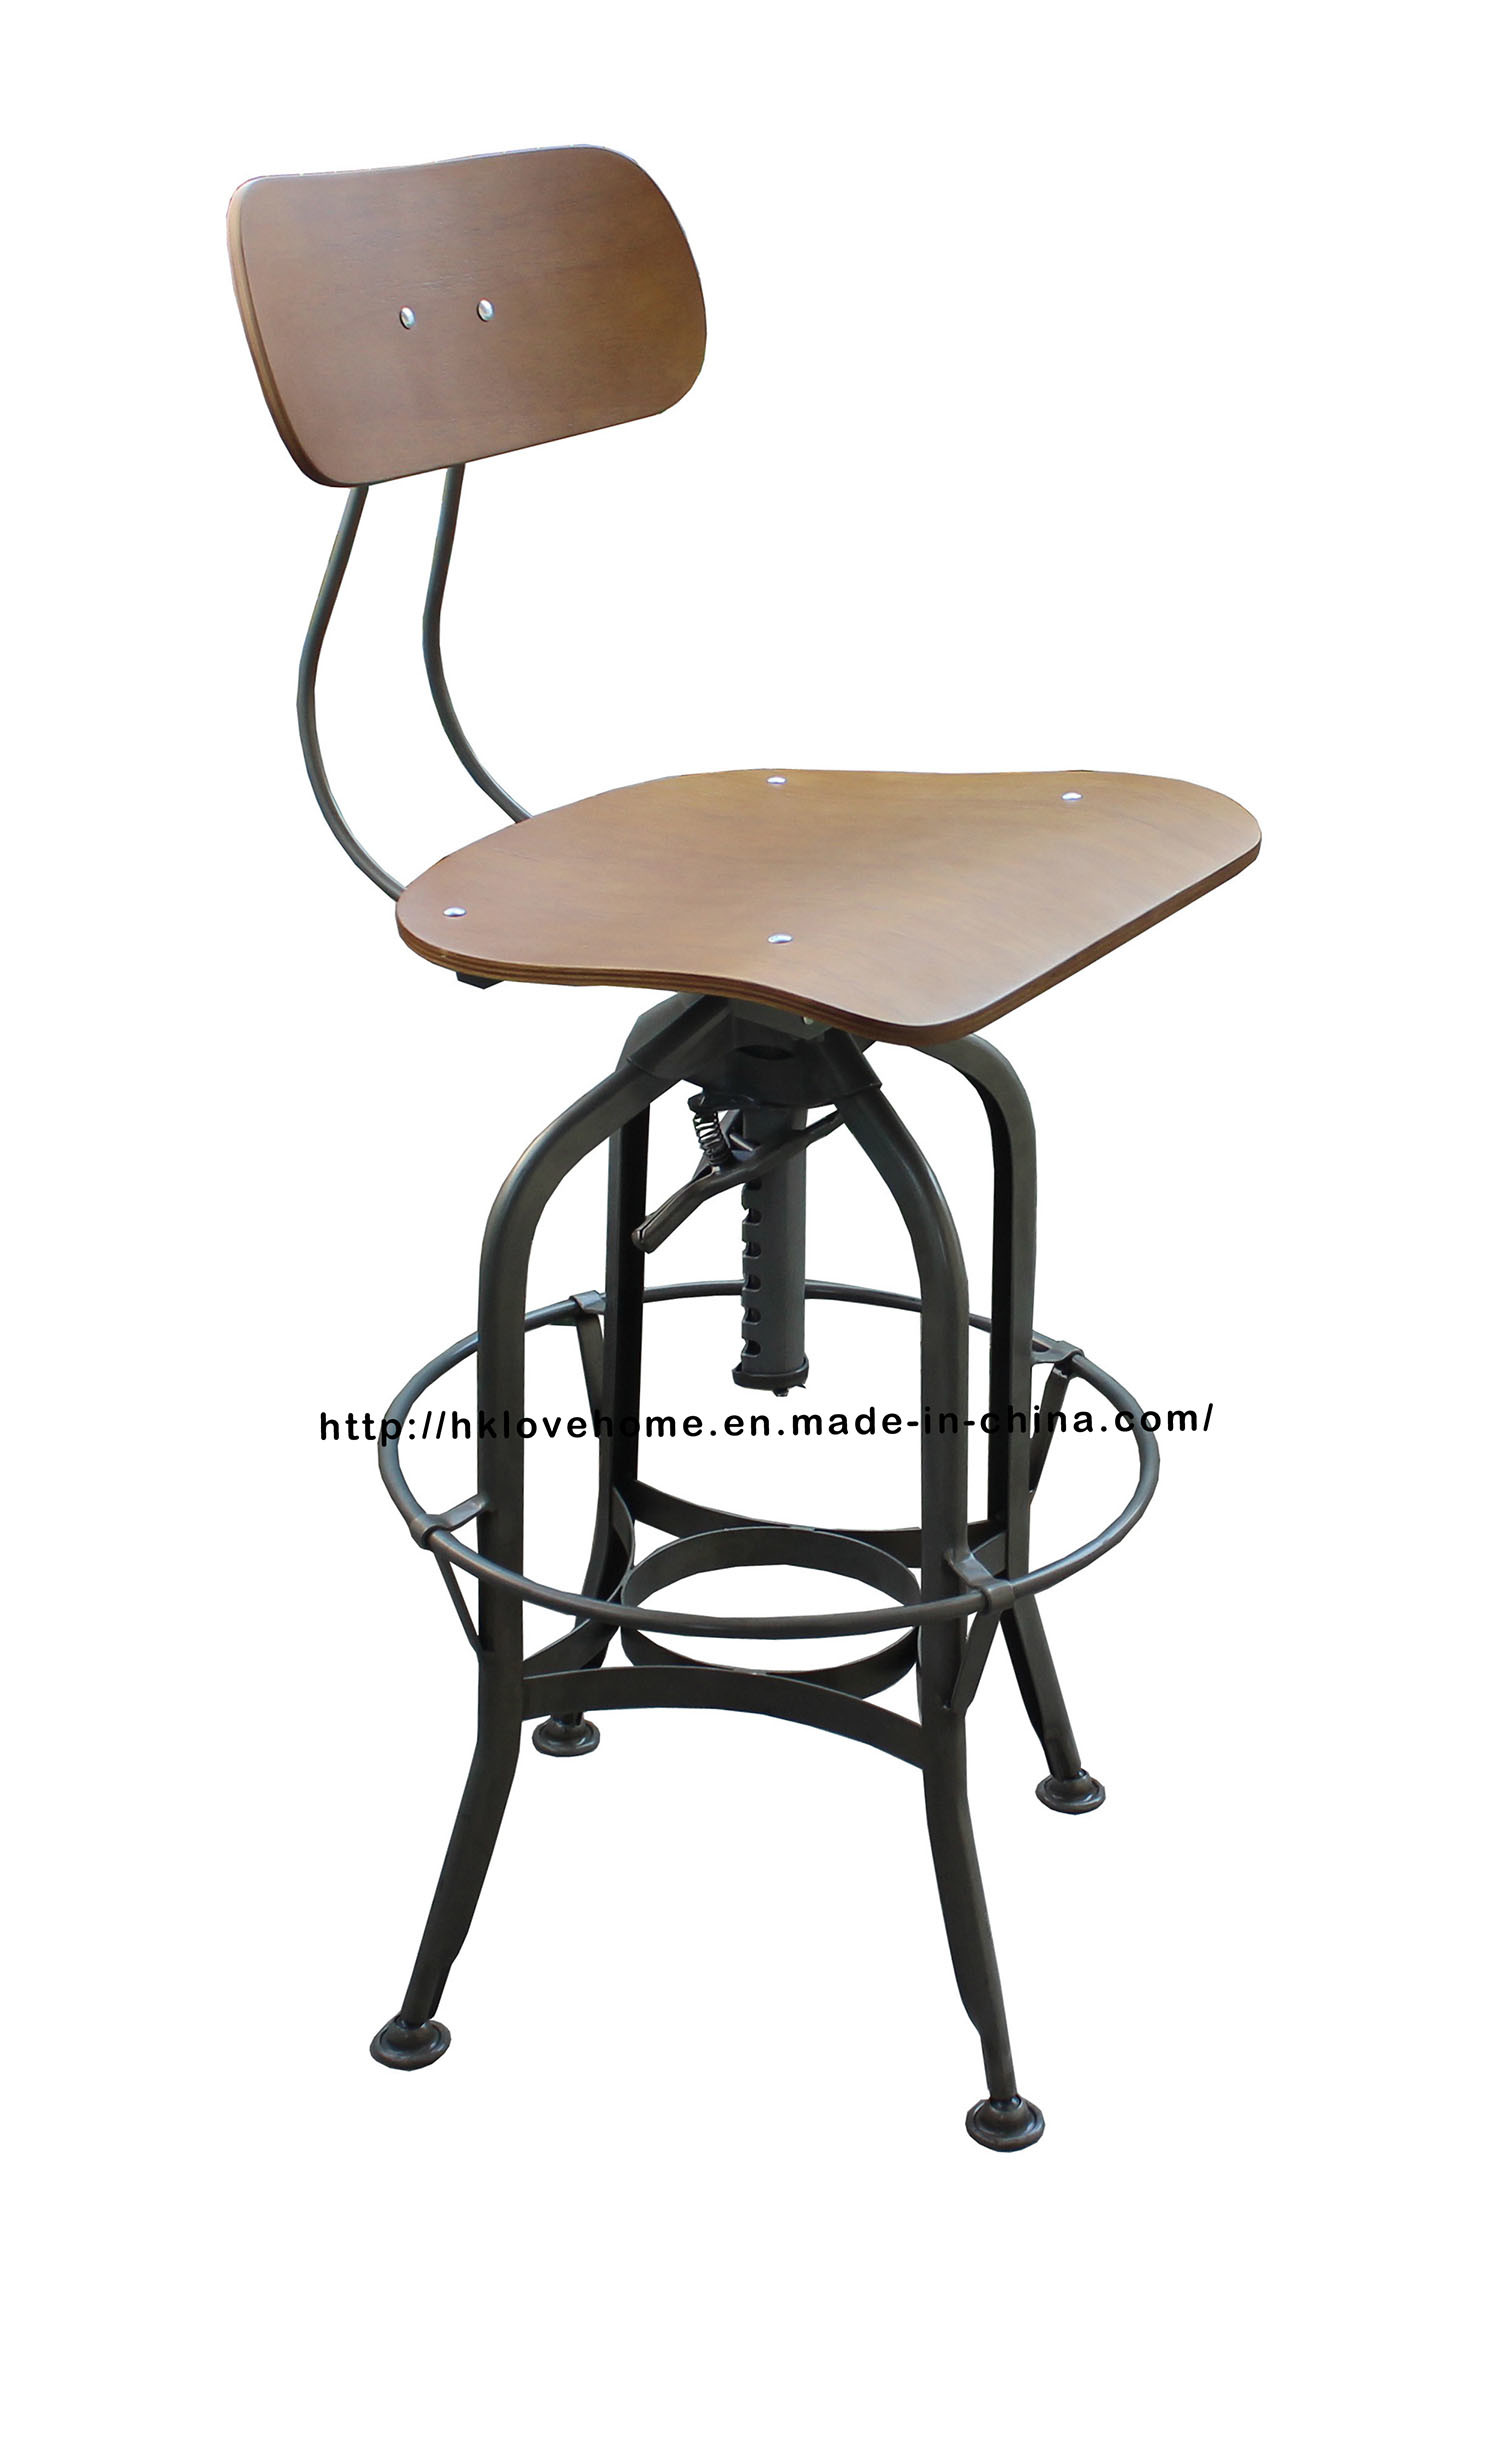 Replica Industrial Metal Restaurant Dining Furniture Toledo Bar Stools Chair